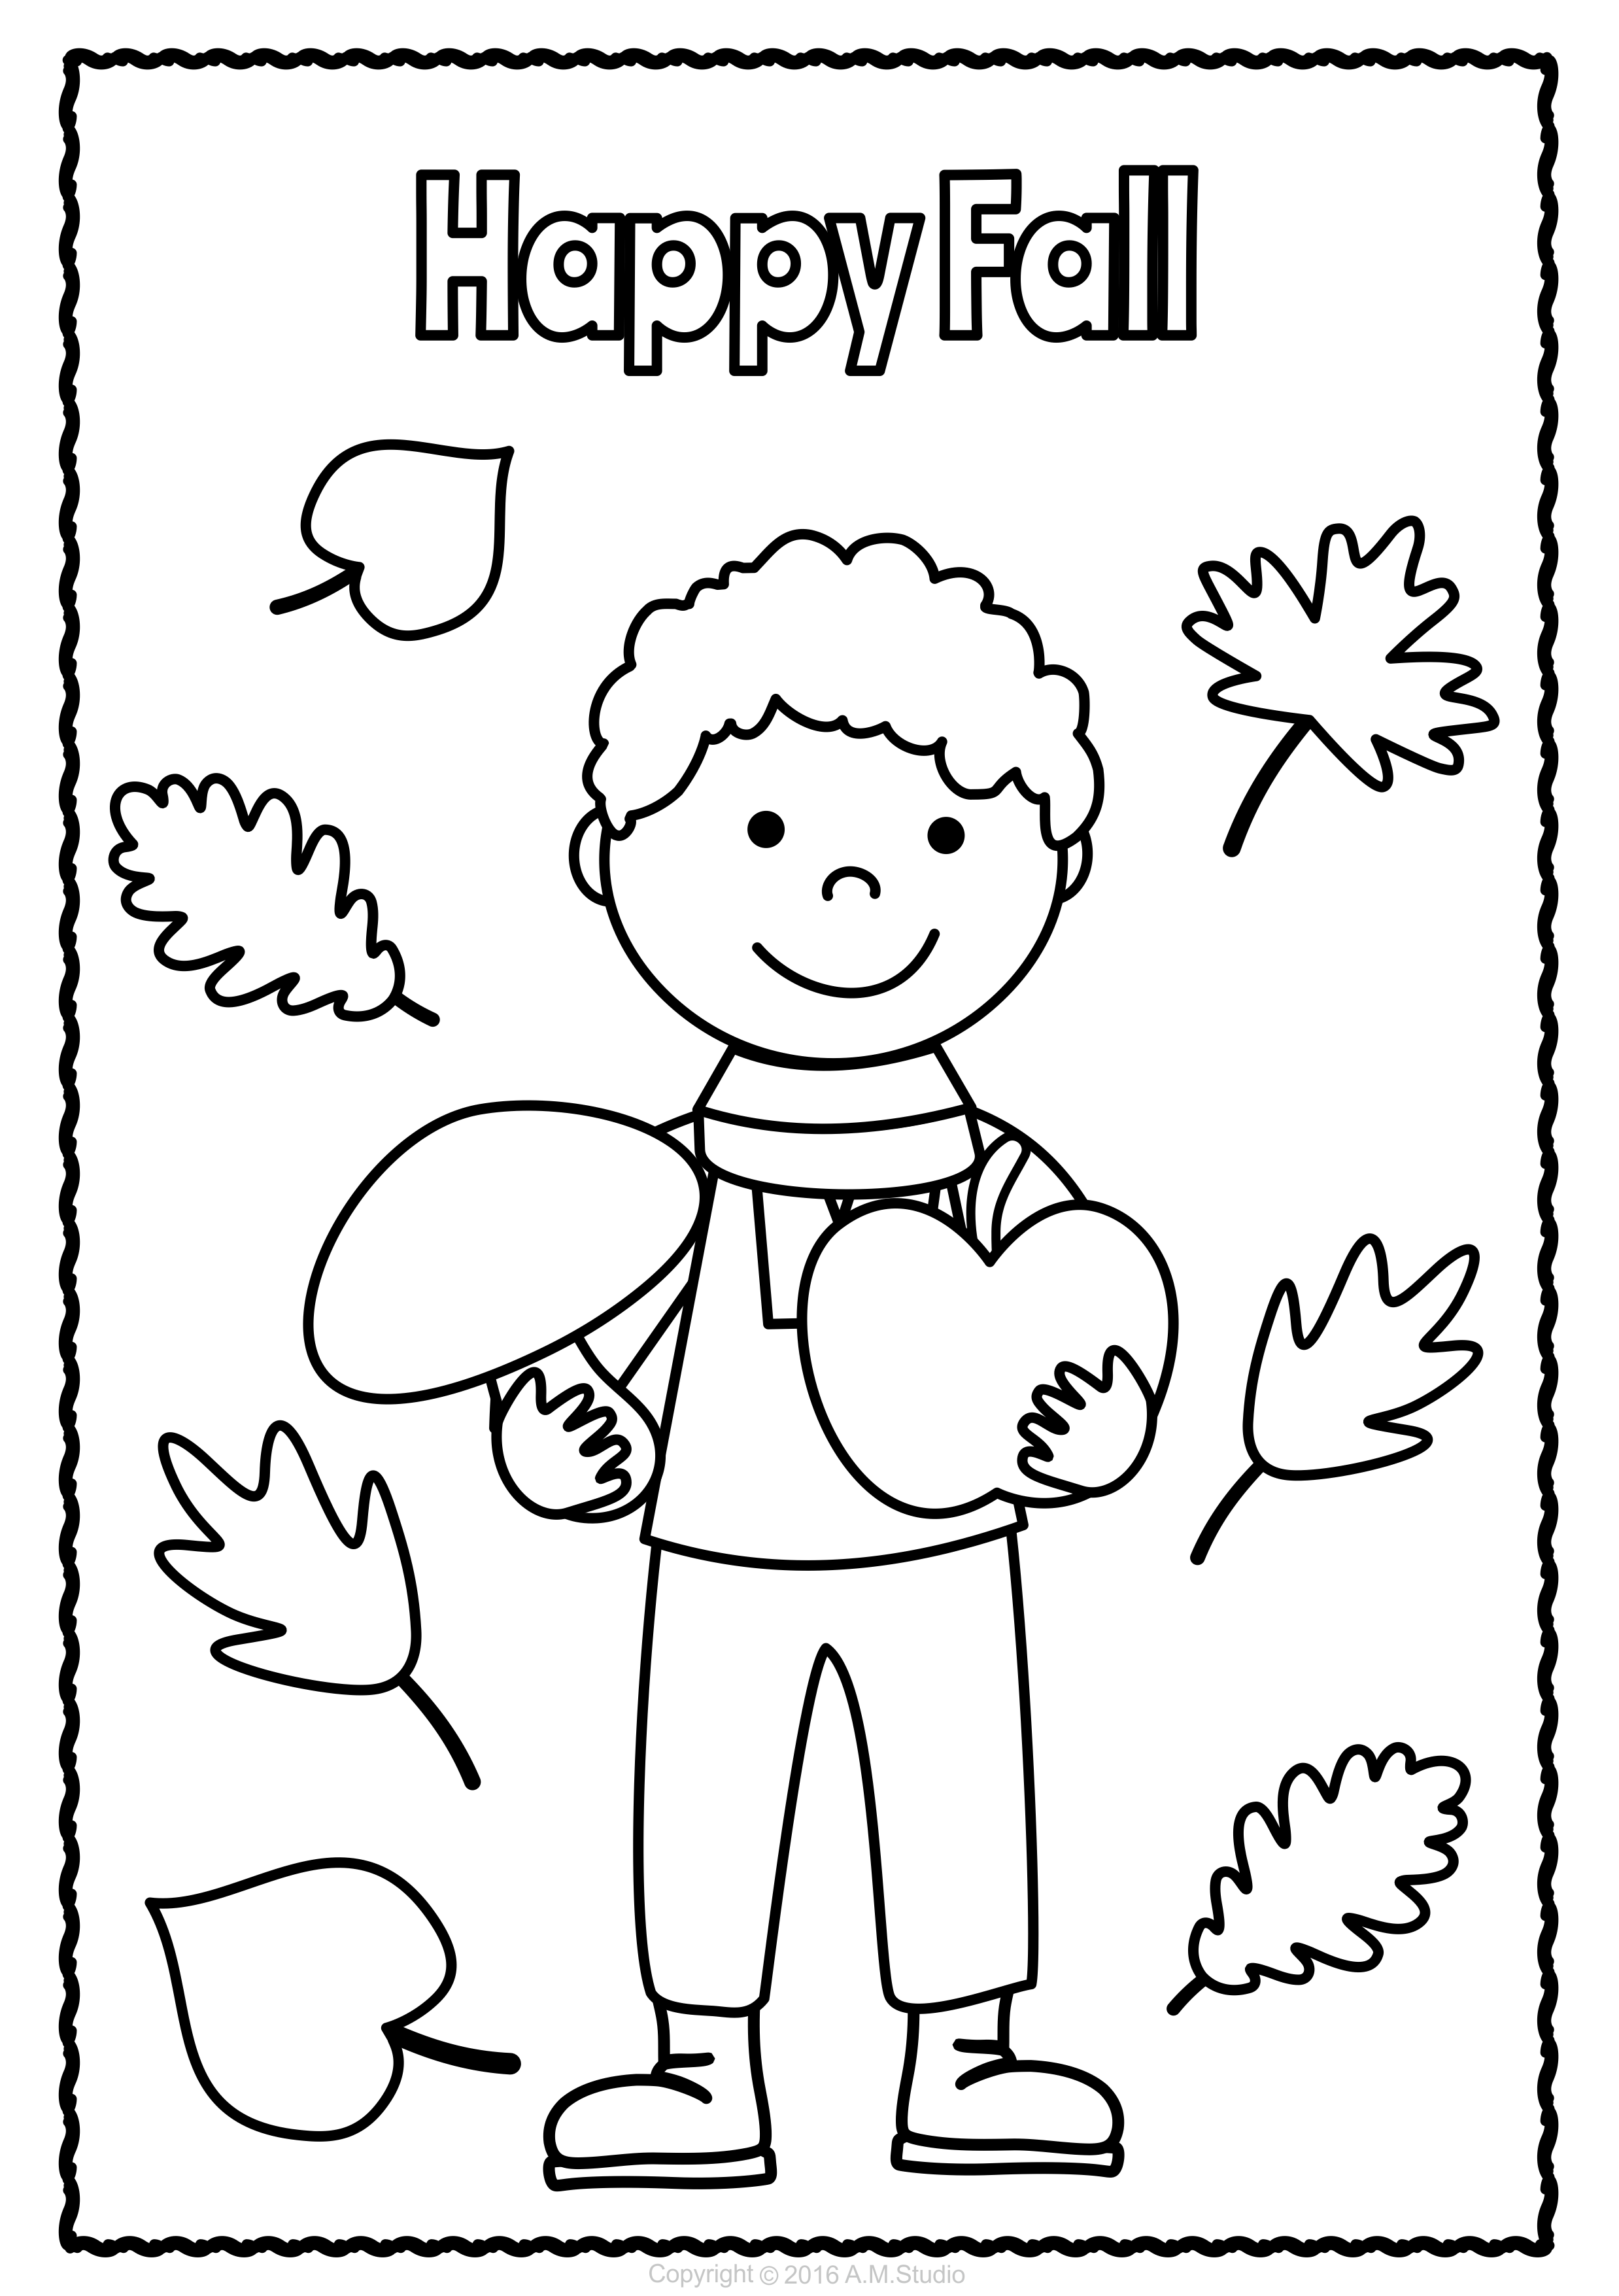 Fall Coloring Pages | Coloring Pages | Pinterest | Coloring ...